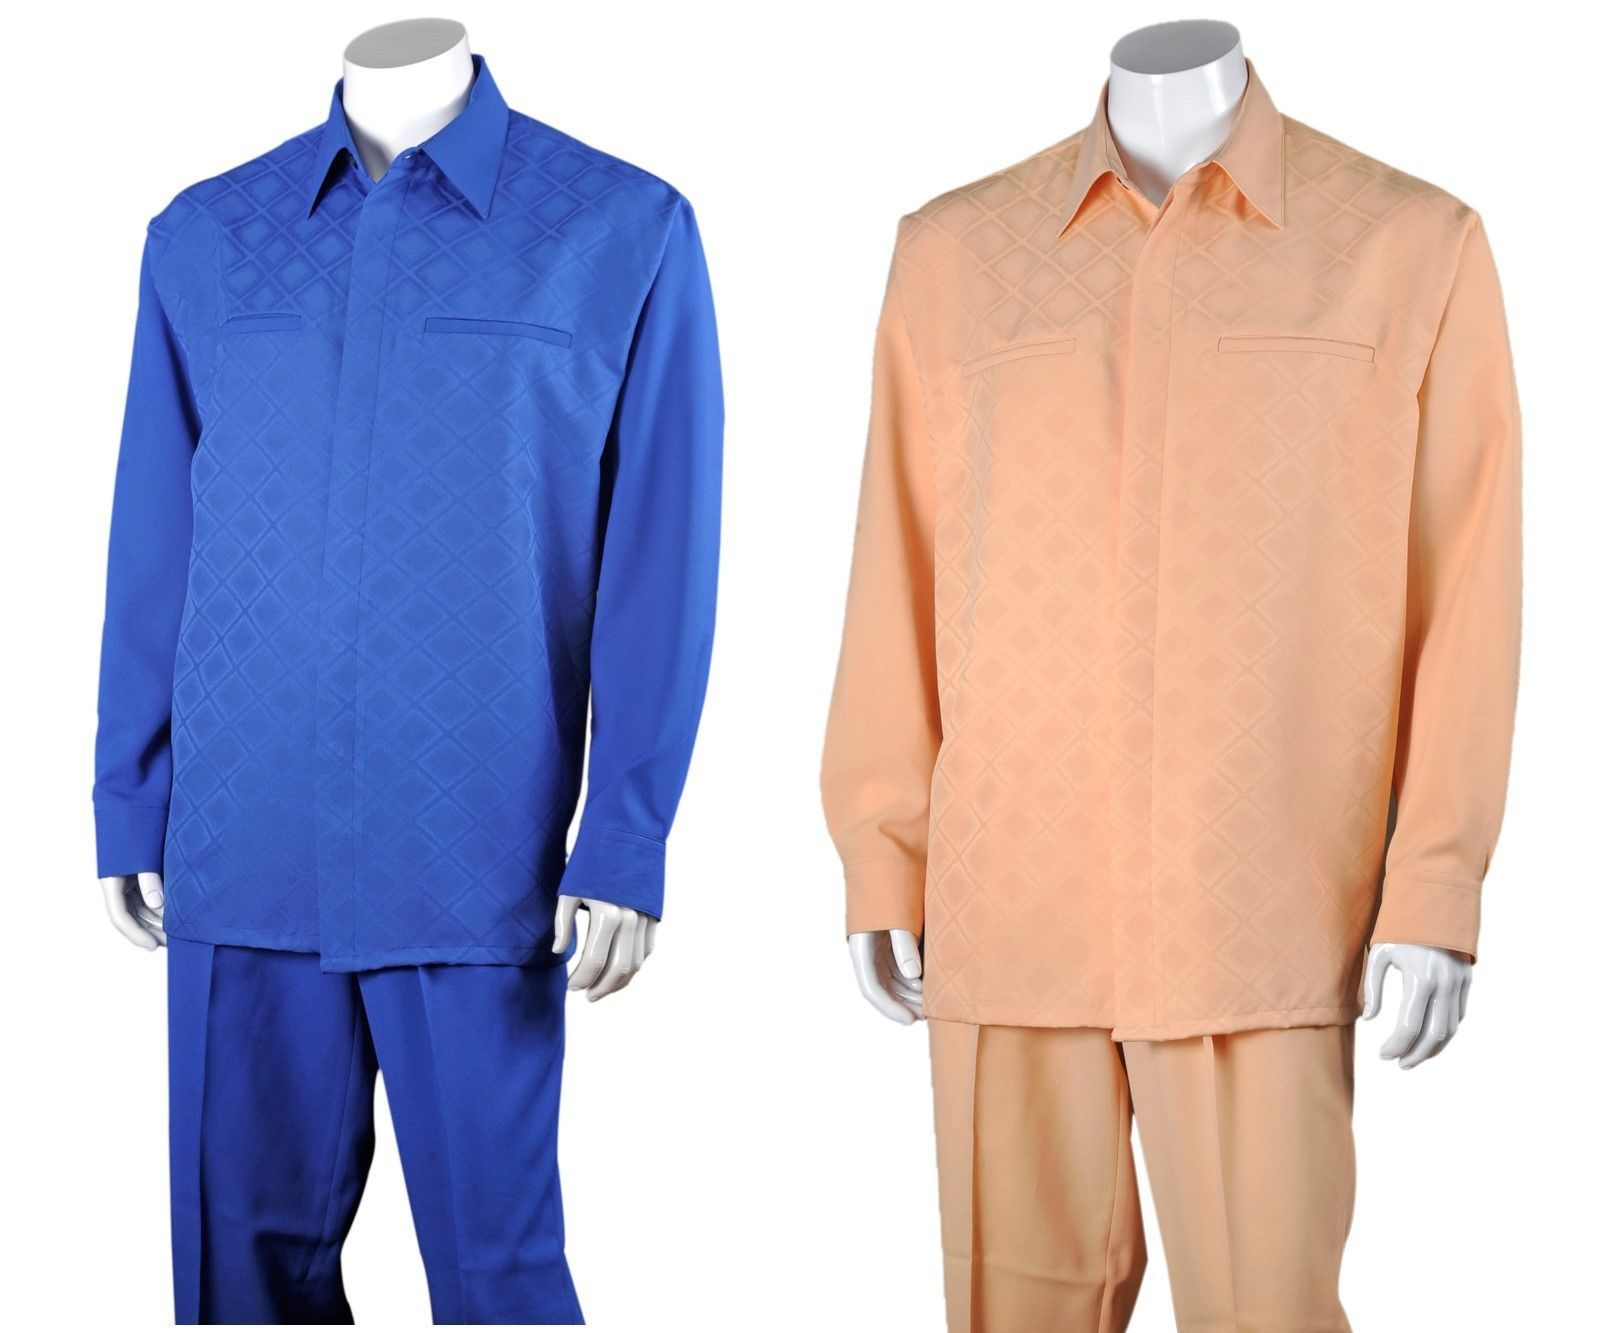 Design By Fortino Landi 2762 Men/'s 100/% Polyester Two Pieces Walking suit Check